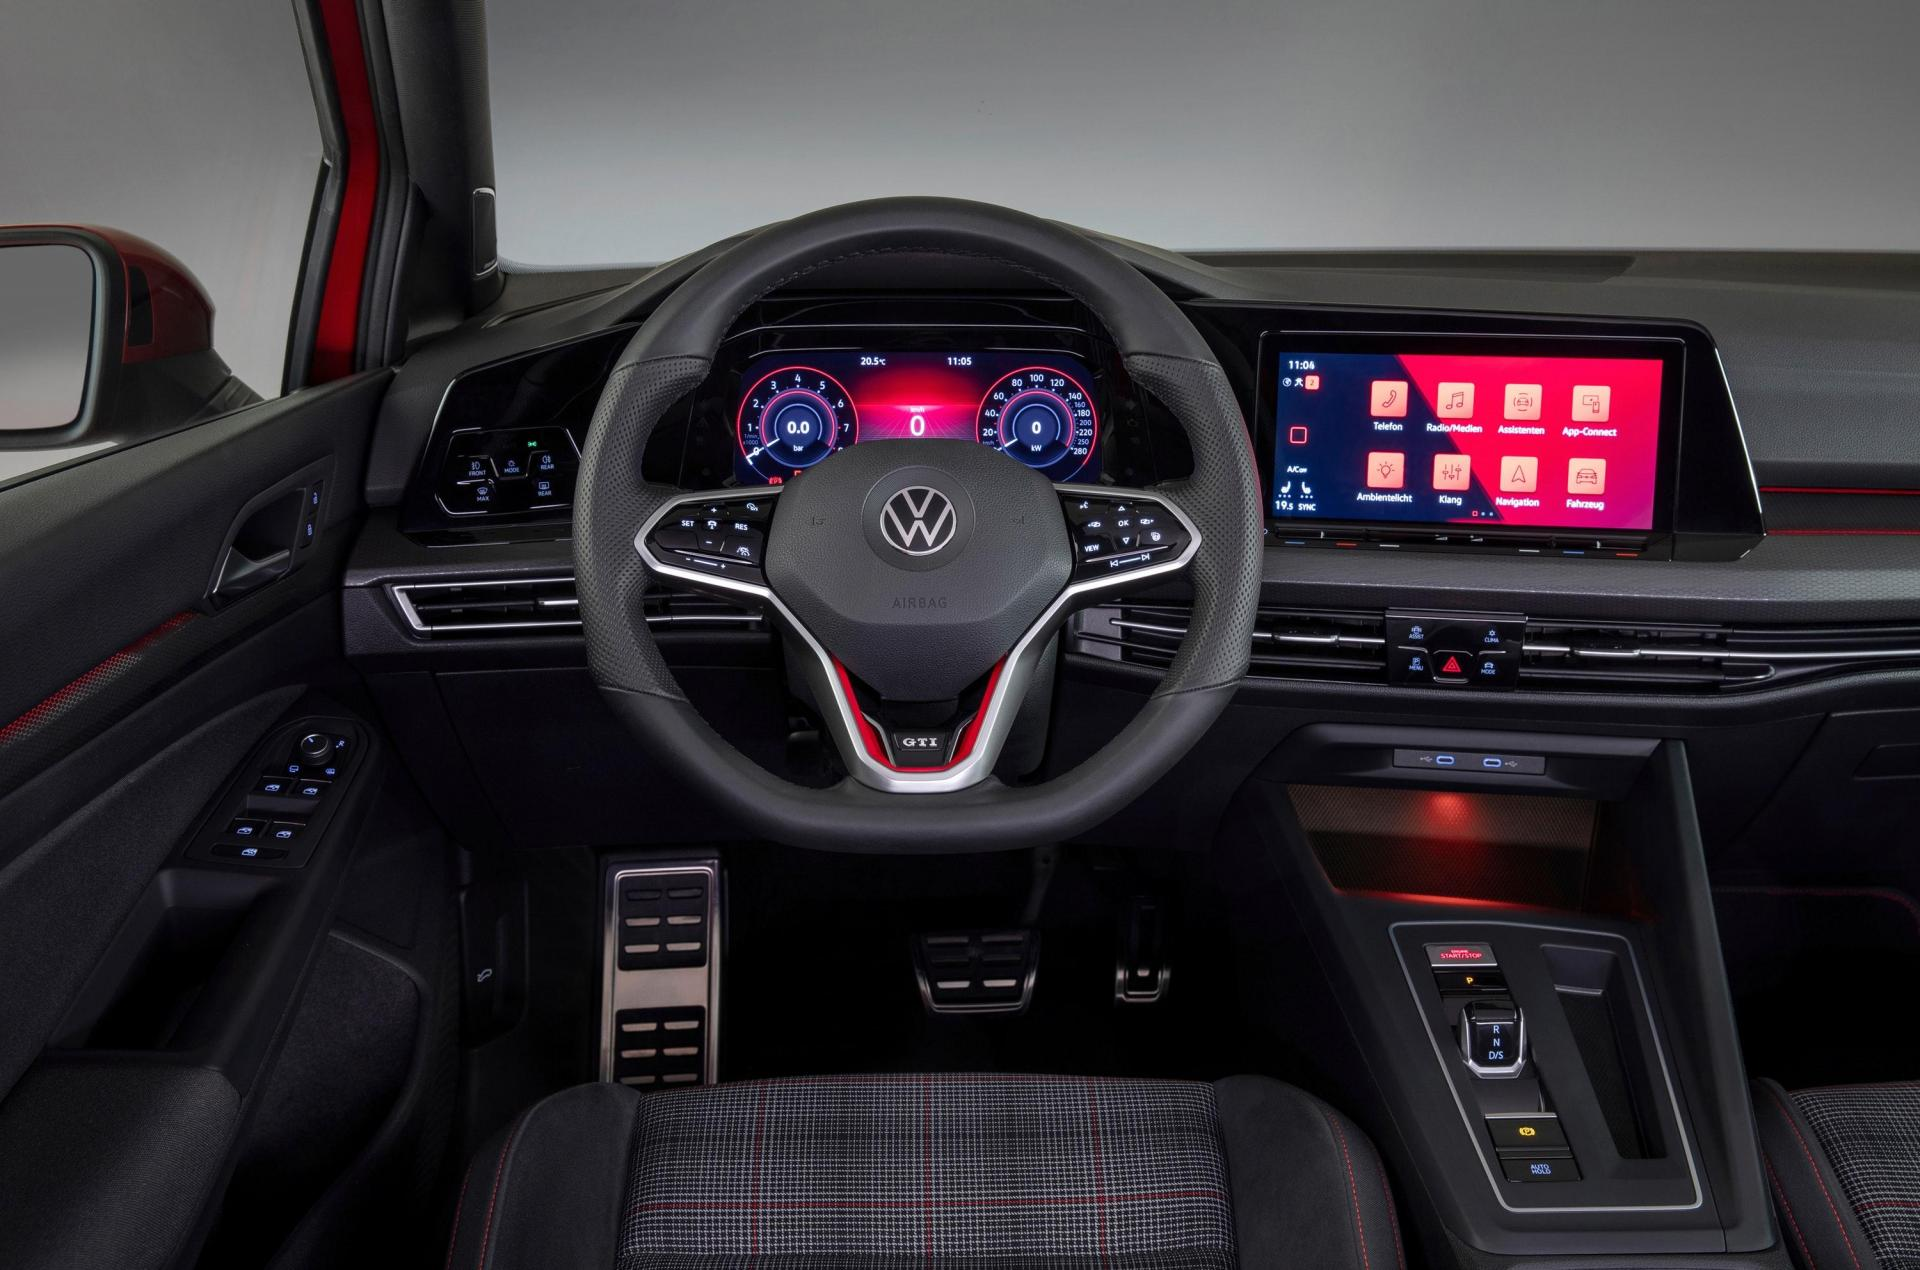 The GTI and GTD models get the digital cockpit as standard, while the GTE gets the upgraded Innovision Cockpit. (VW)